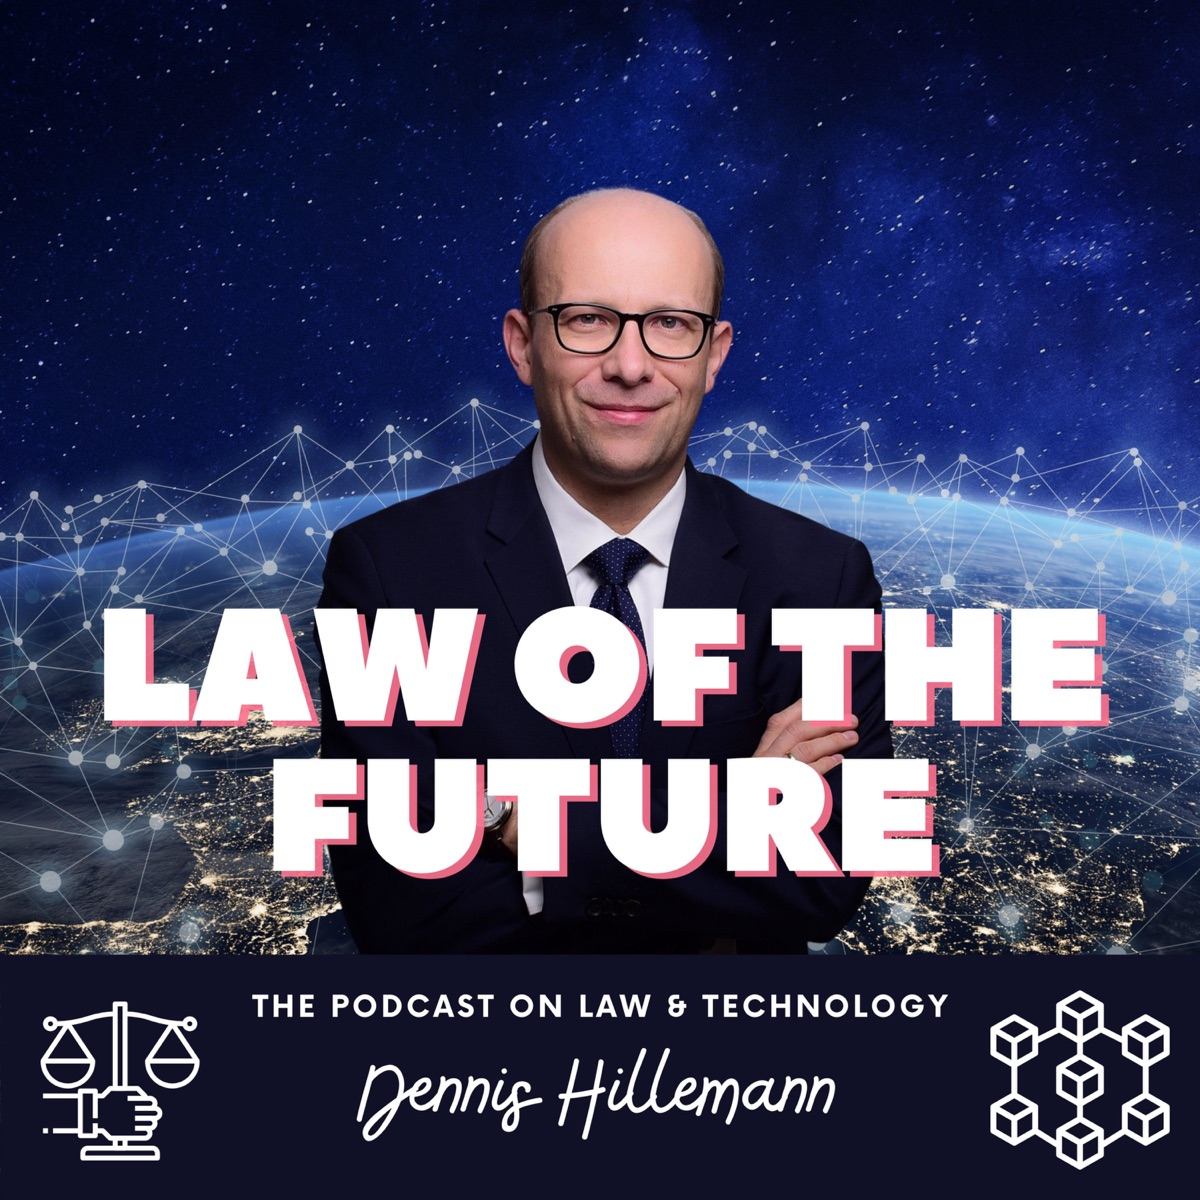 Law of the Future - The Podcast on Law & Technology with Dennis Hillemann